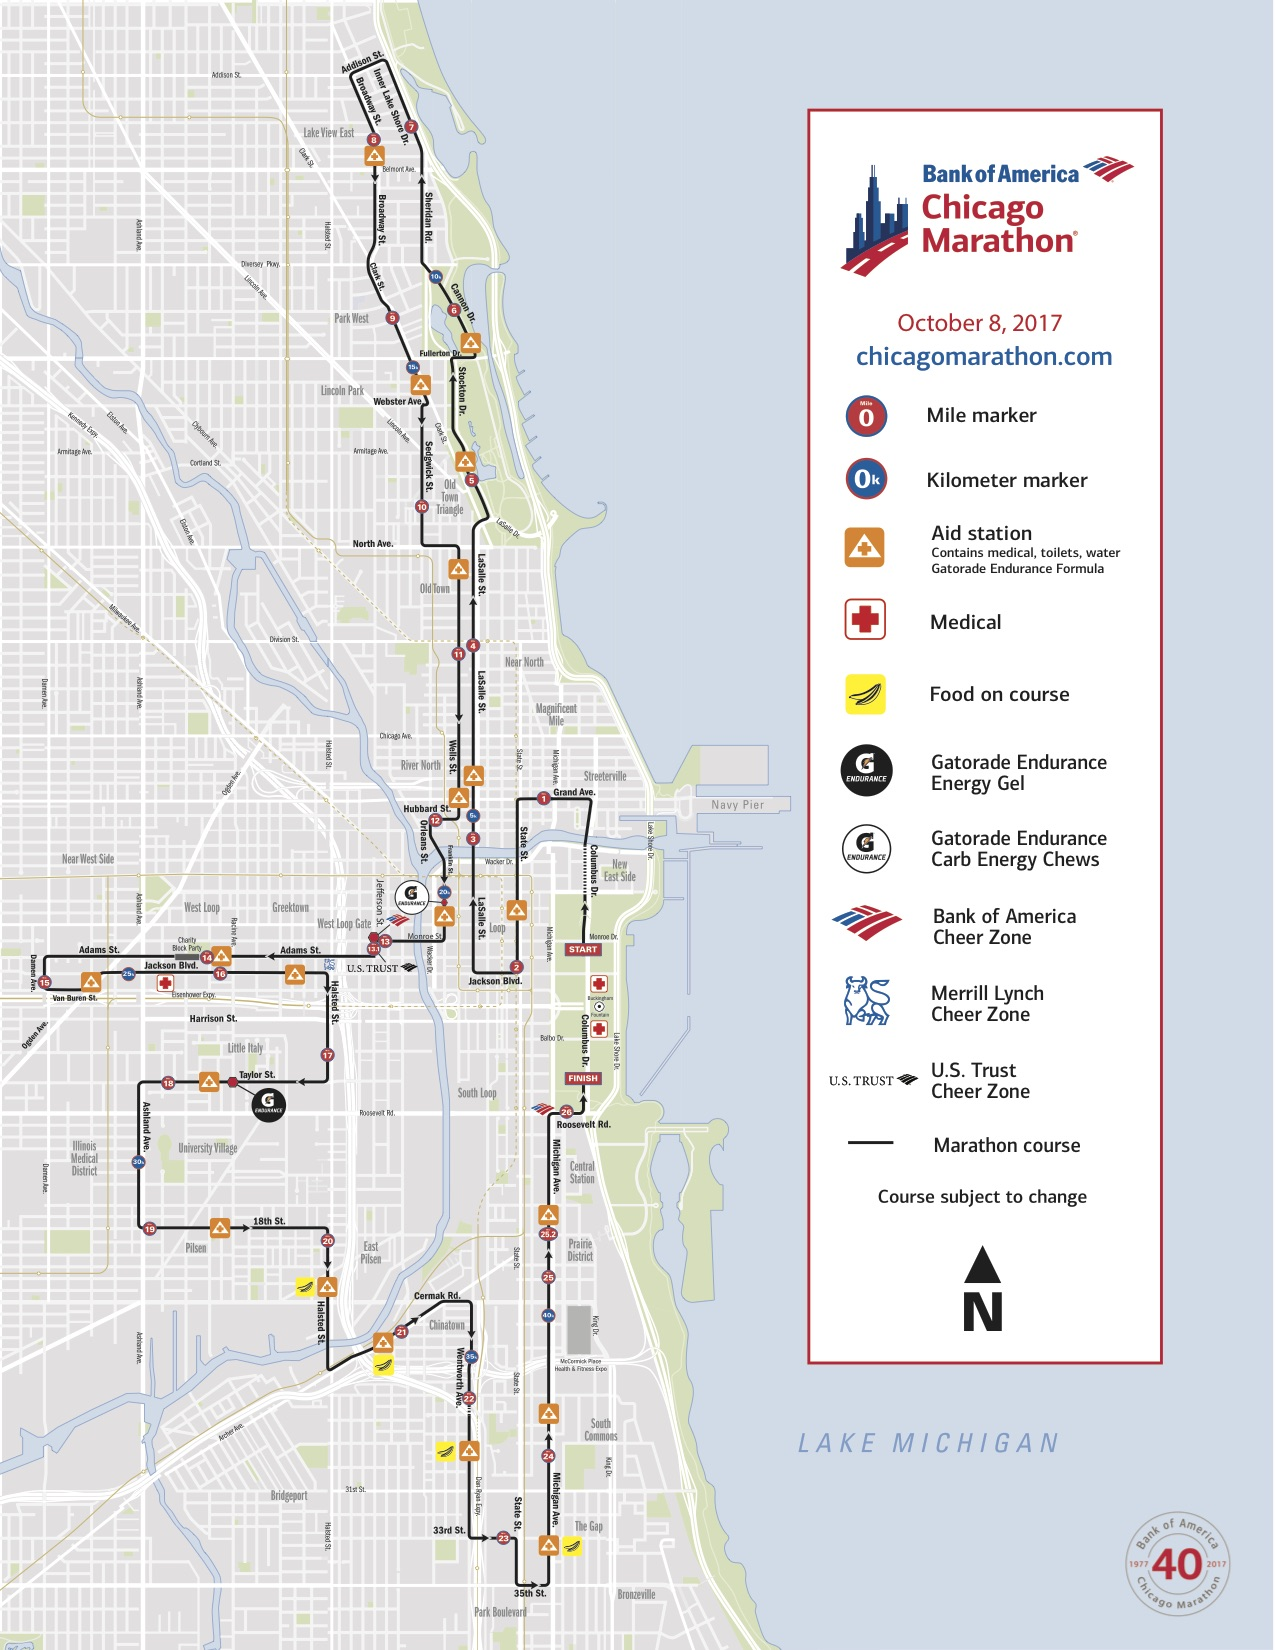 Chicago Marathon: Course map, live stream, TV info and more on chicago marathon race course, cherry blossom 10 miler course map, nyc marathon elevation map, boston marathon course map, flying pig half marathon course map, outer banks marathon course map, miami half marathon course map, berlin marathon course map, rome marathon course map, chicago marathon course profile, bay to breakers course map, maine marathon course map, eppie's great race course map, louisiana marathon map, grandmas marathon course map, marine corps marathon course map, el paso marathon course map, prague marathon course map, paris marathon course map, dubai marathon course map,